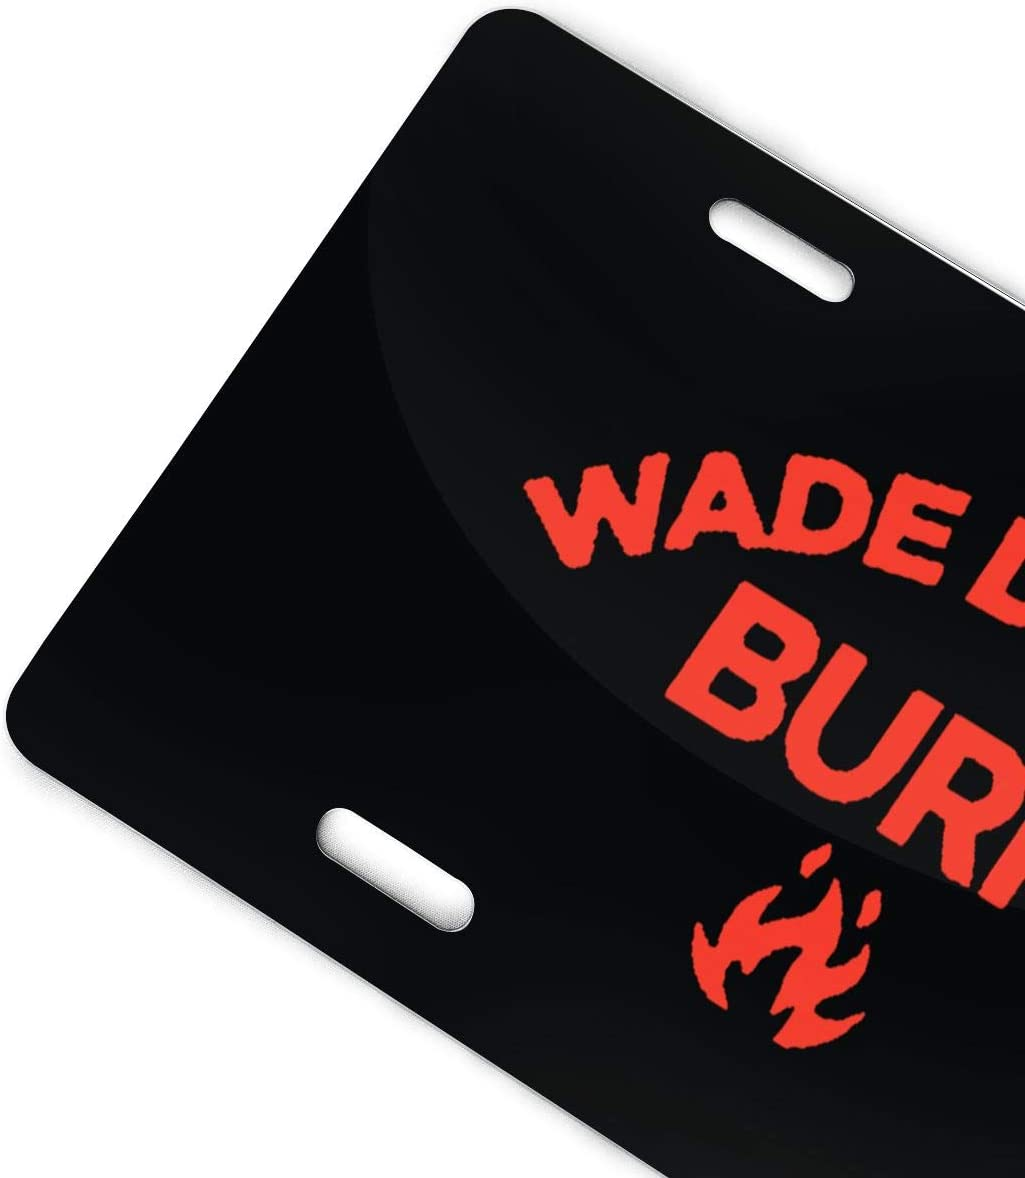 Oppo-ww Wade Doesnt Burn Retro License Plates for Car Decoration 6 Inch X 12 Inch